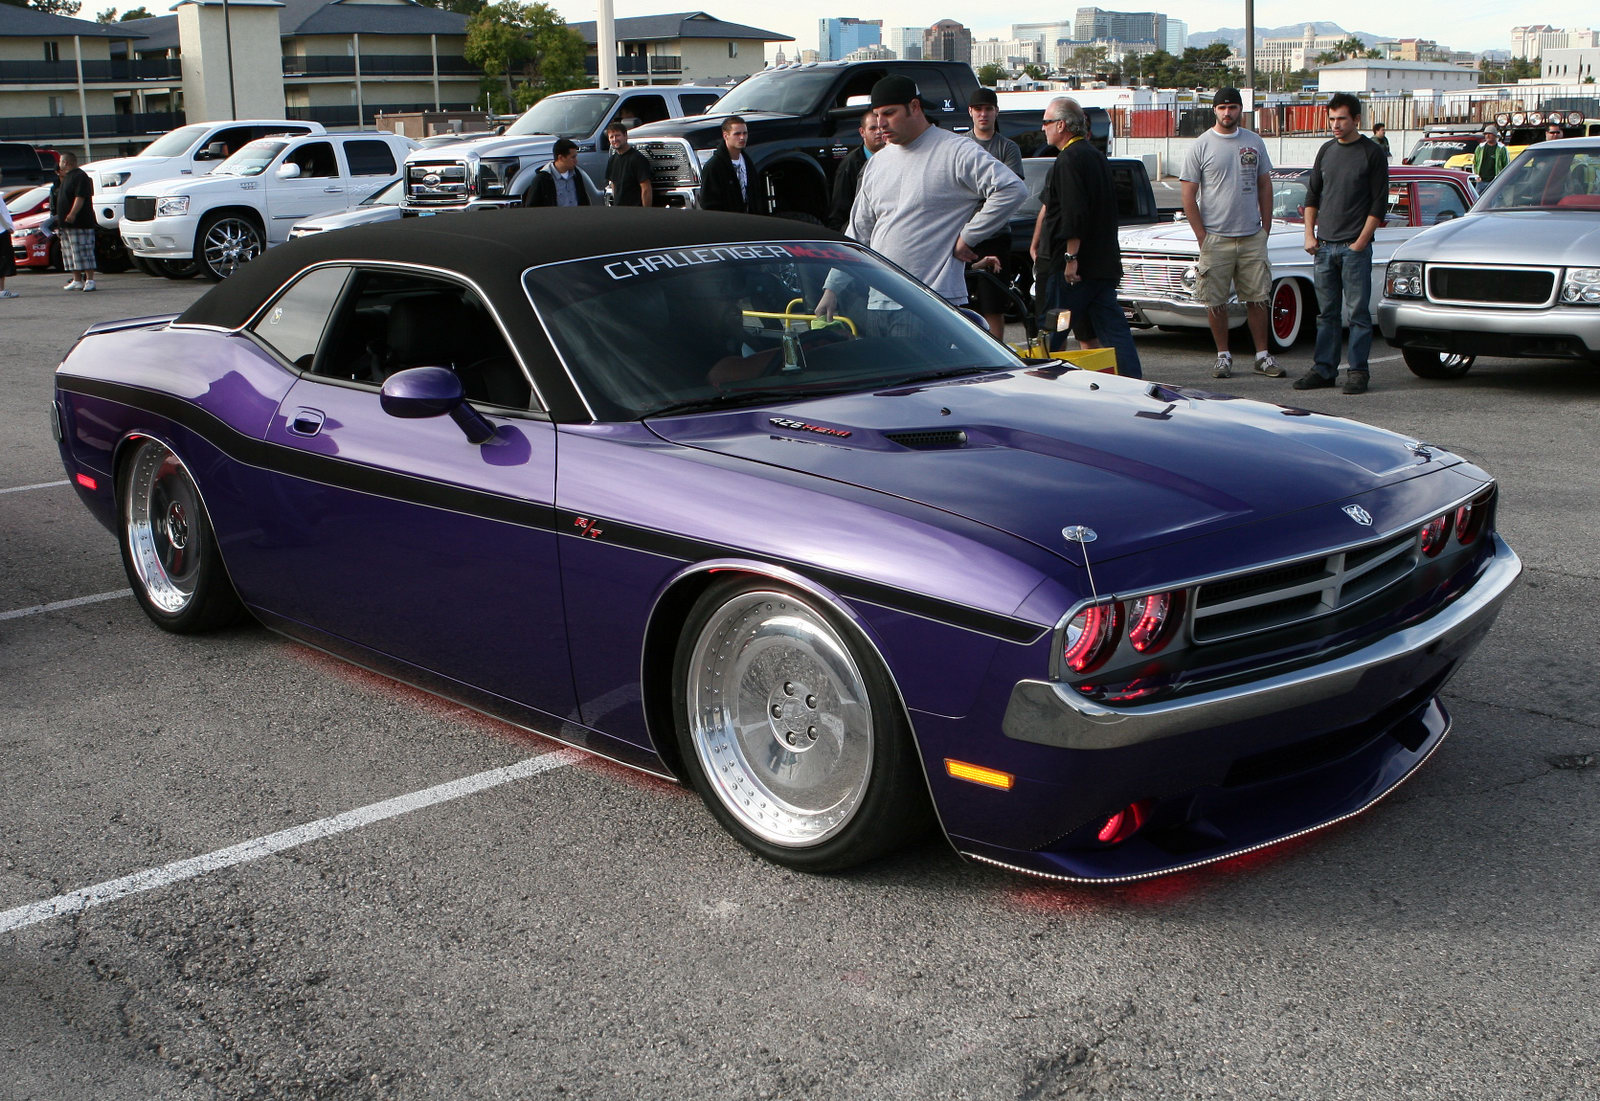 2010 Dodge Challenger By Radiatnz Inc. Review - Gallery - Top Speed